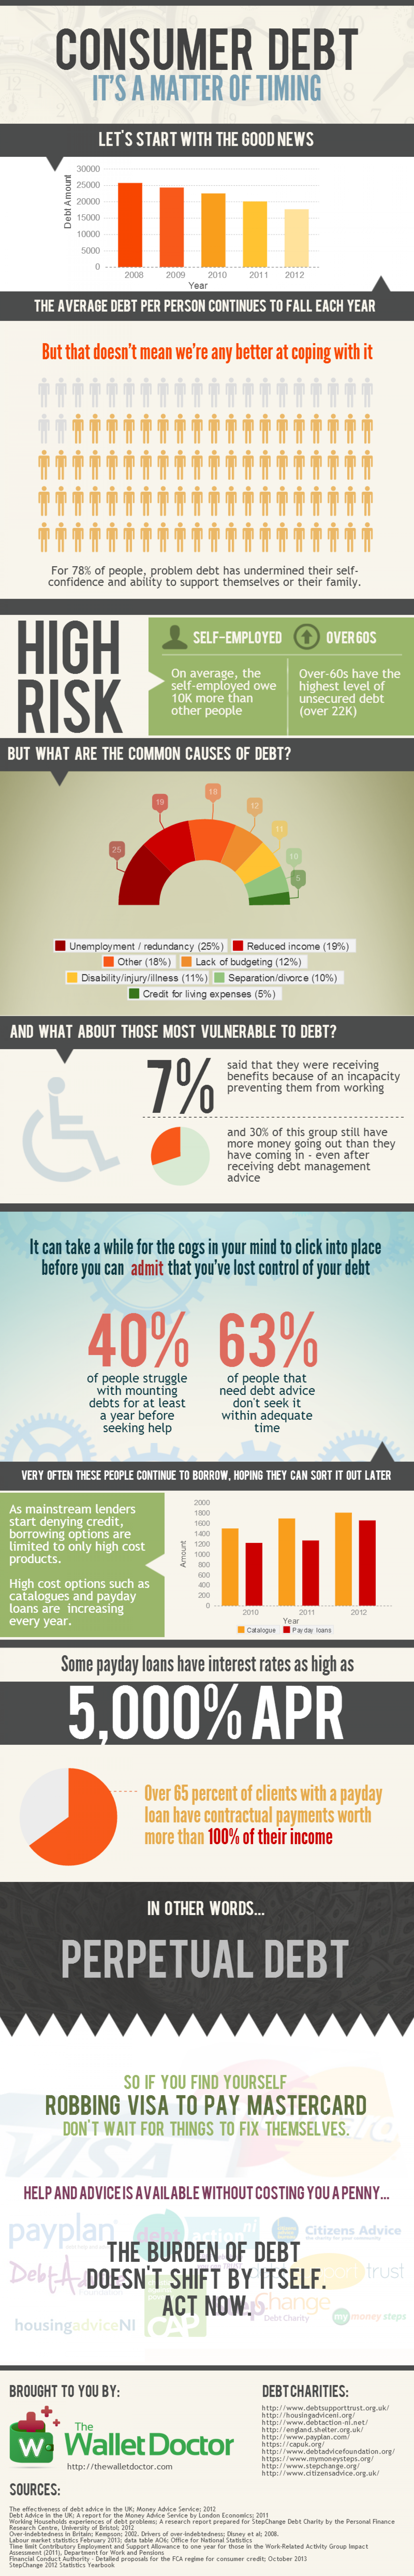 Consumer Debt - It's a Matter of Timing Infographic